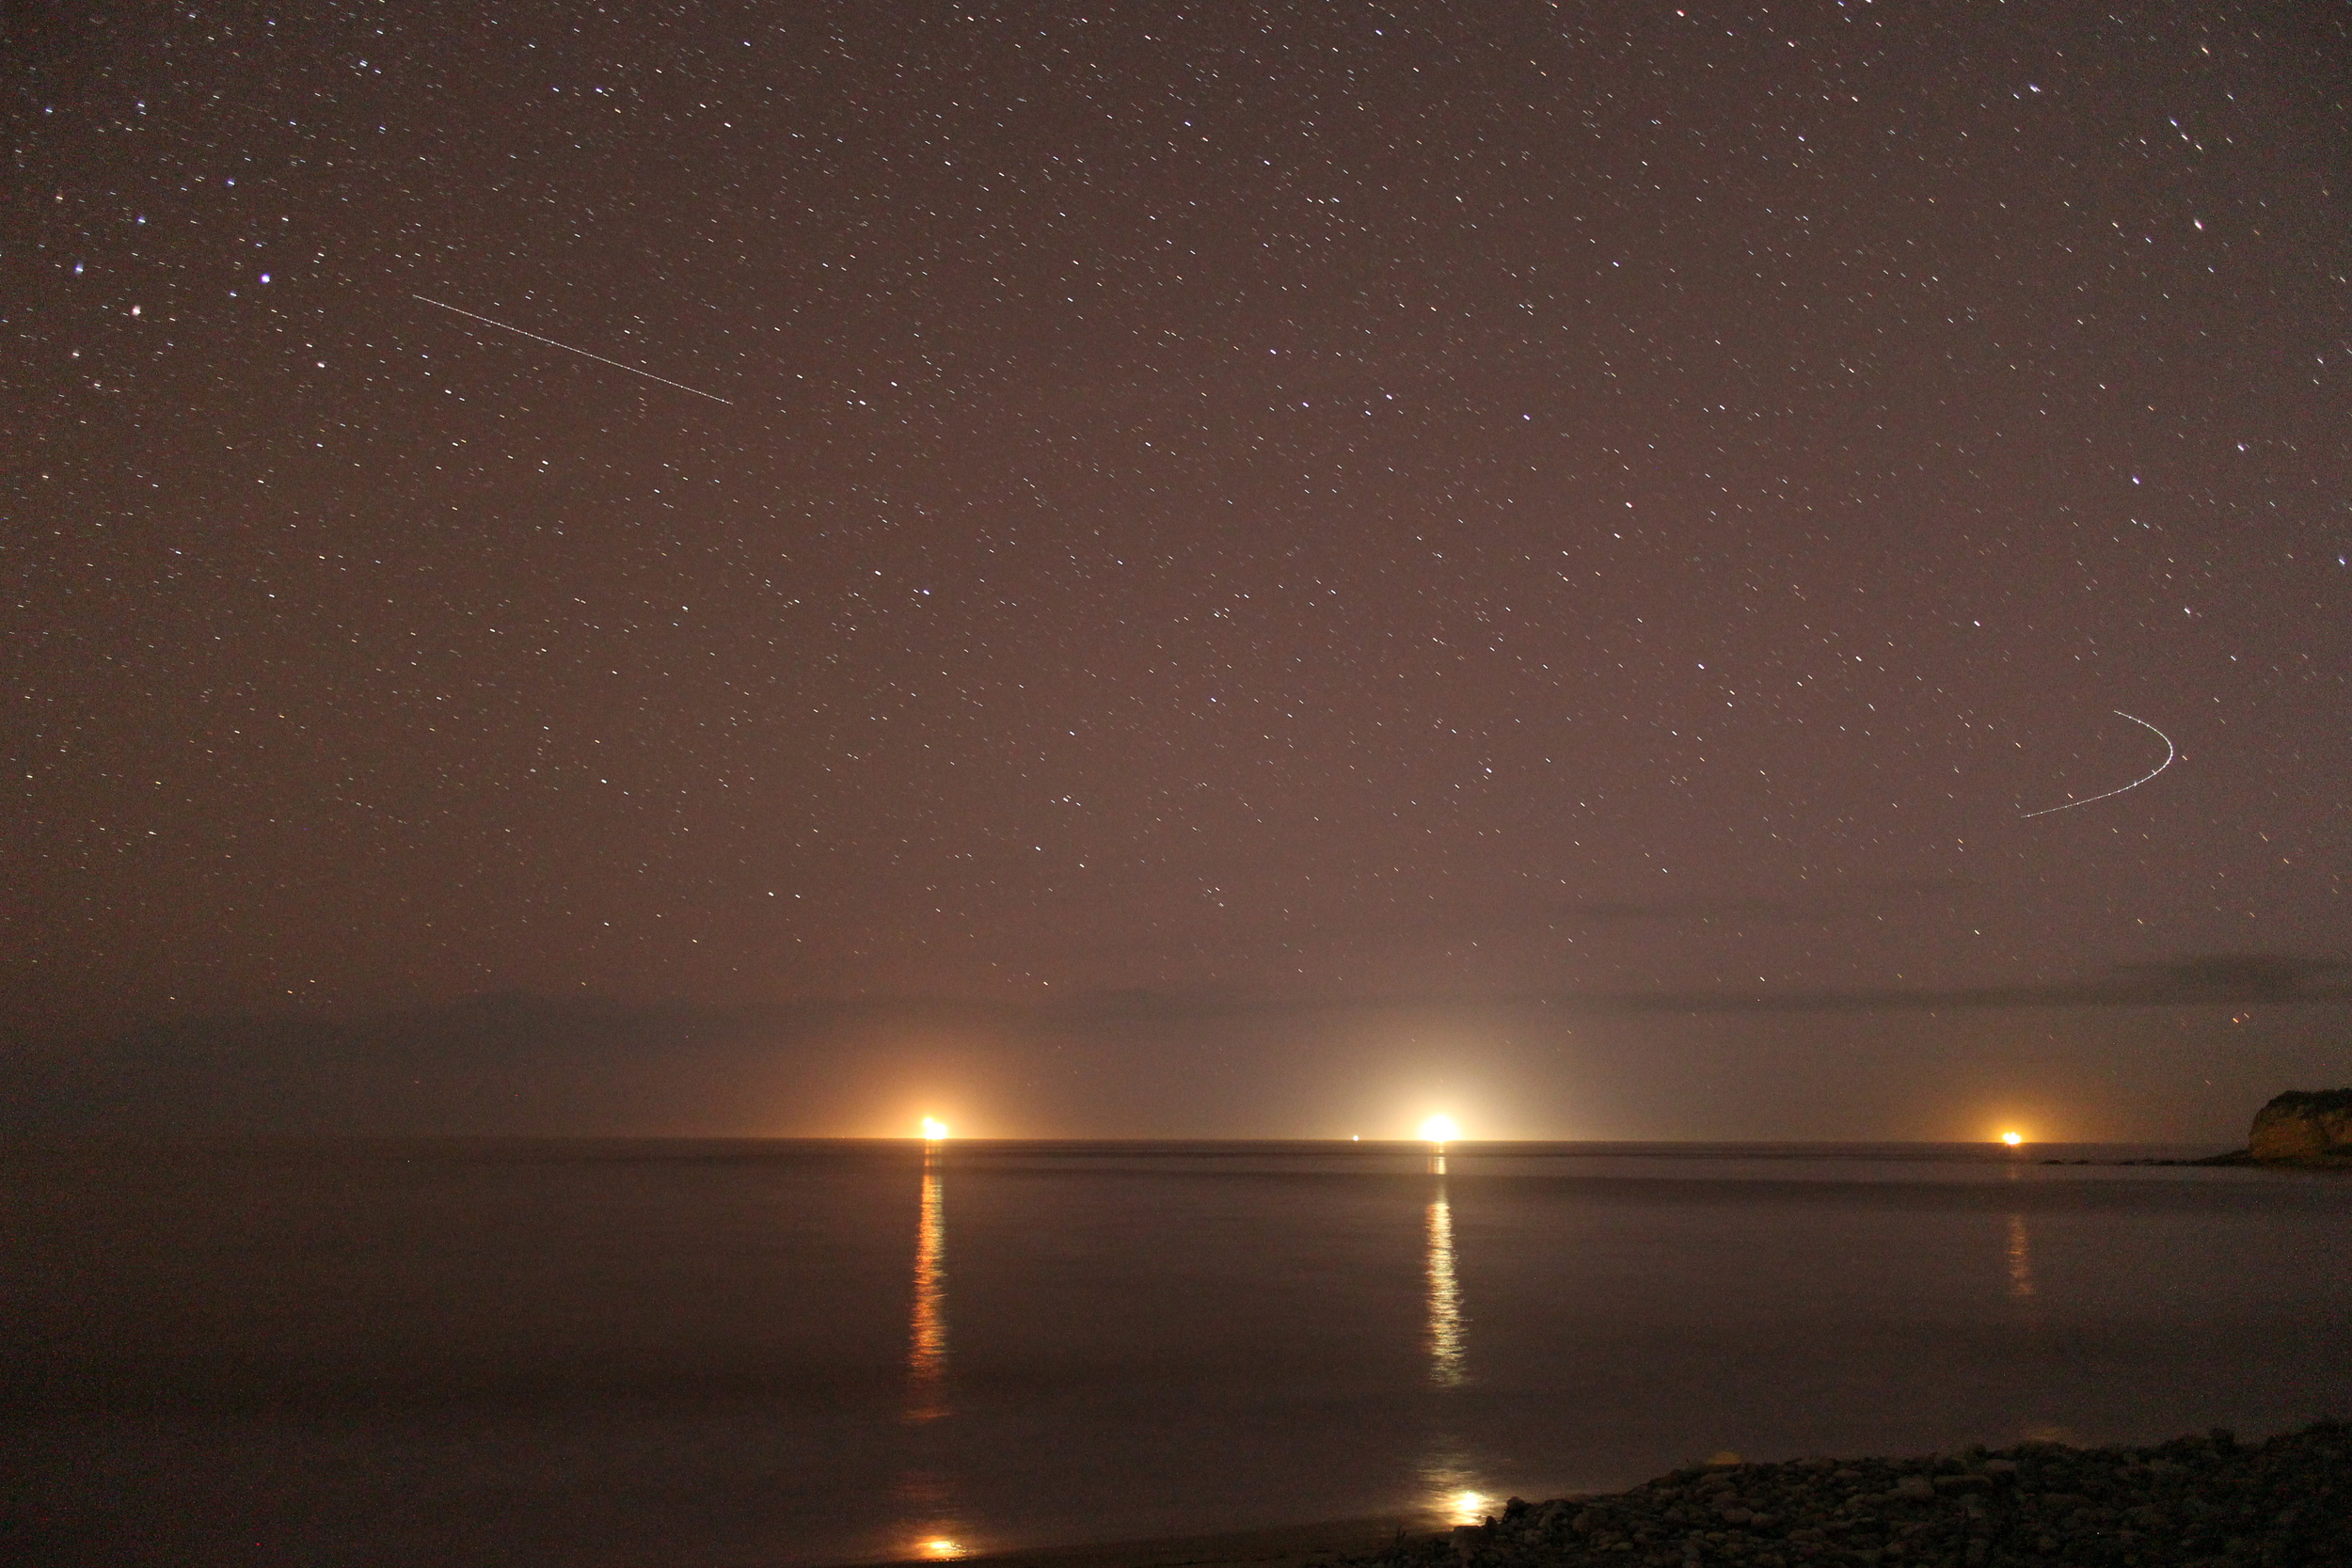 When I was in San Francisco, Marc showed me how to take night shots, thank you! (Those are oil rigs off the coast)